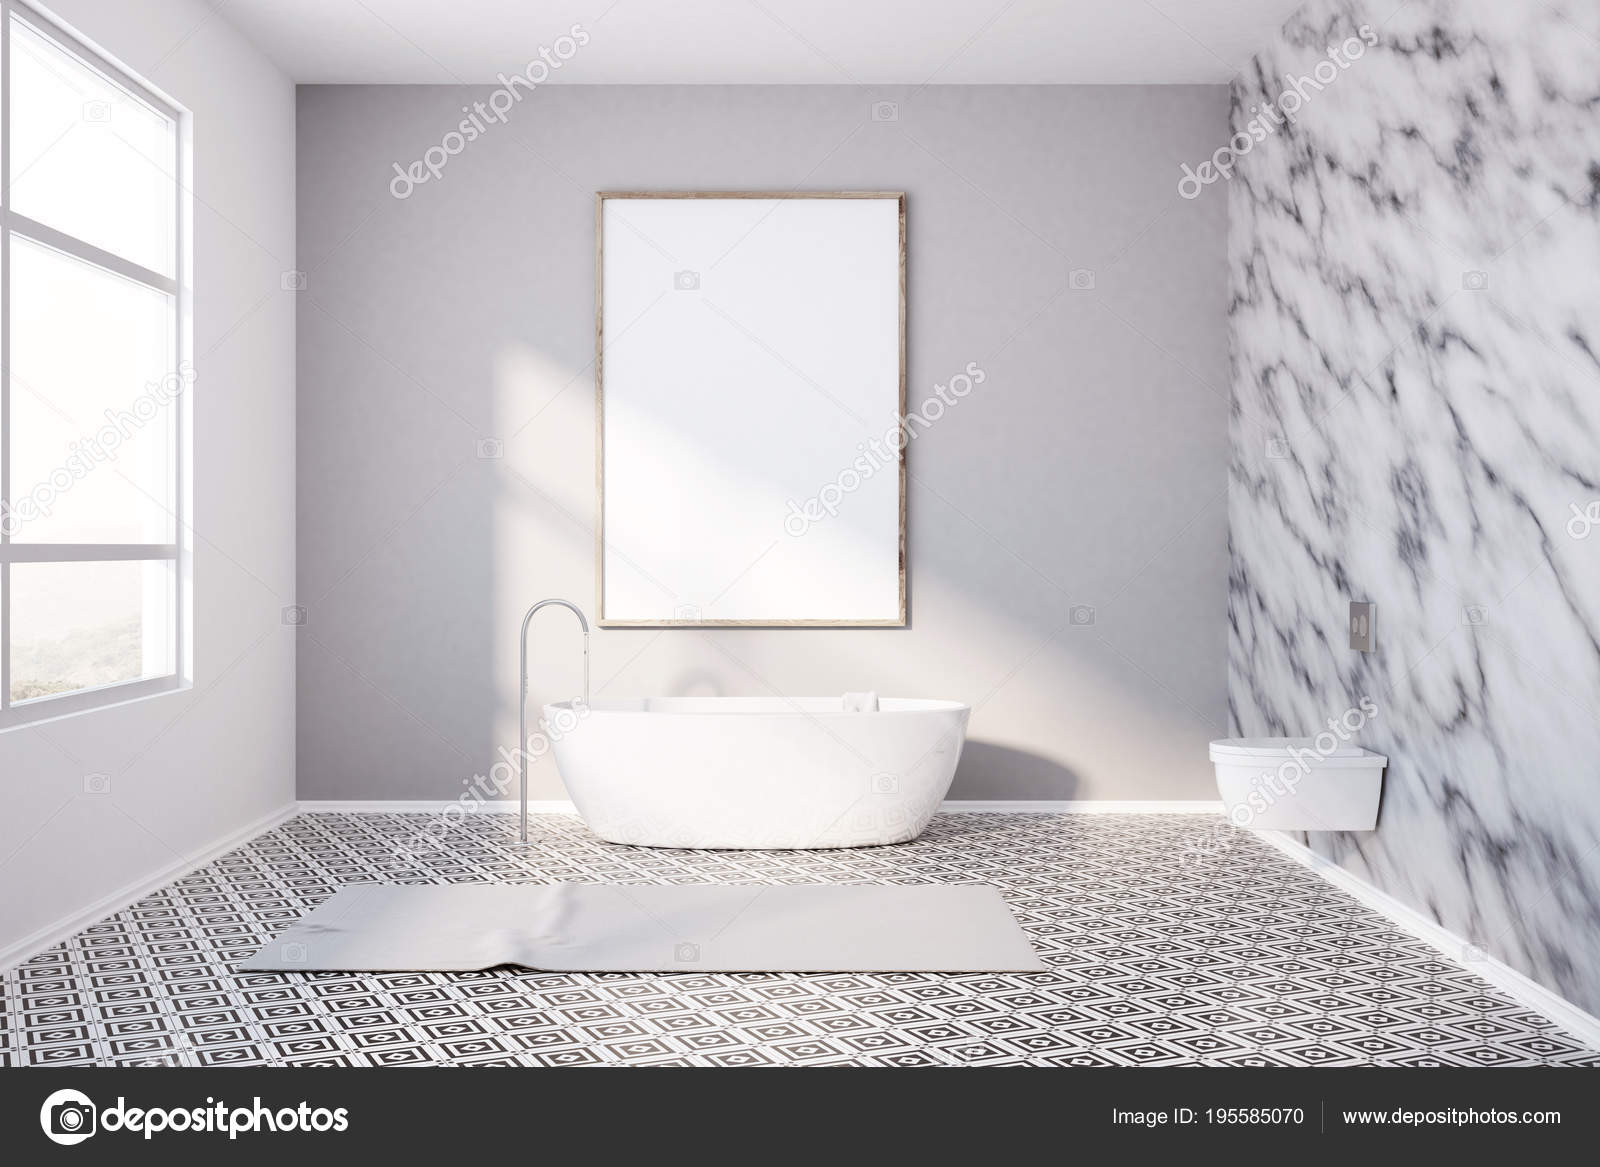 Modern Bathroom Marble Walls And Poster Stock Photo C Denisismagilov 195585070